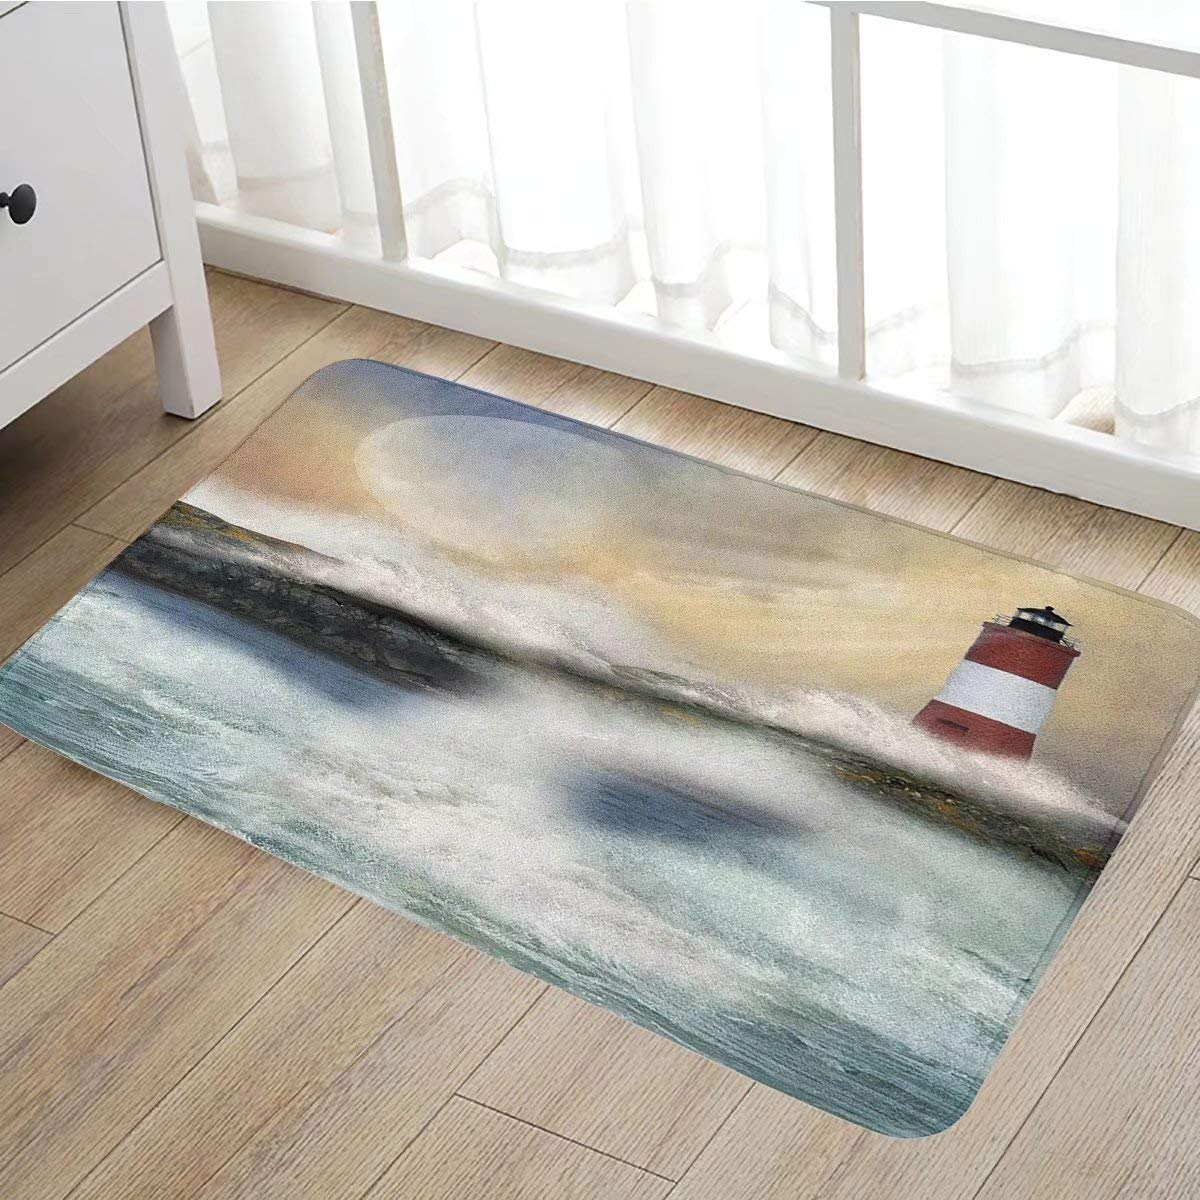 beautiful Lighthouse Bath Mats Part - 13: Get Quotations · Lighthouse bath mats for bathroom Oil Painting Style  Artwork of Stormy Sea Splashing Waves Moon and